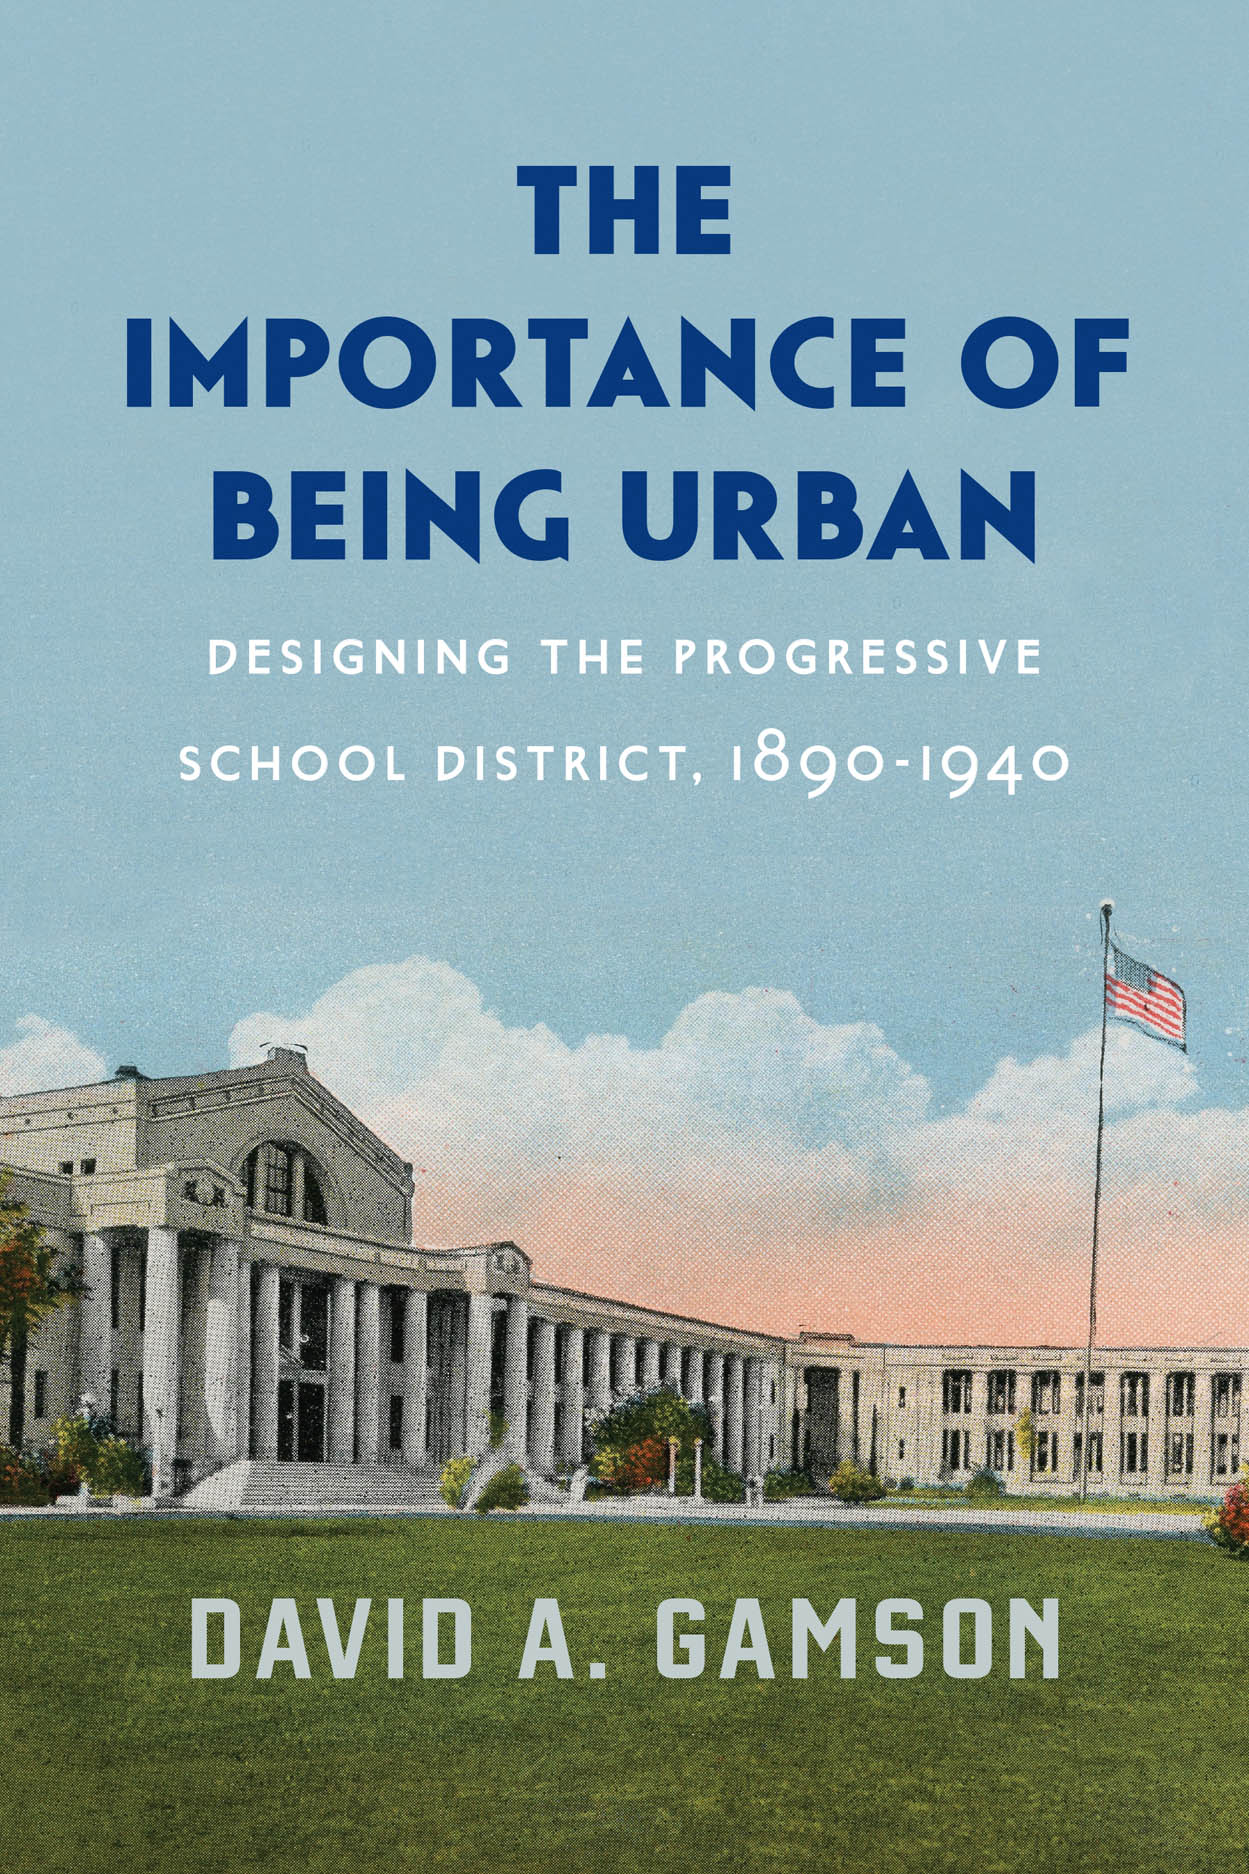 The Importance of Being Urban